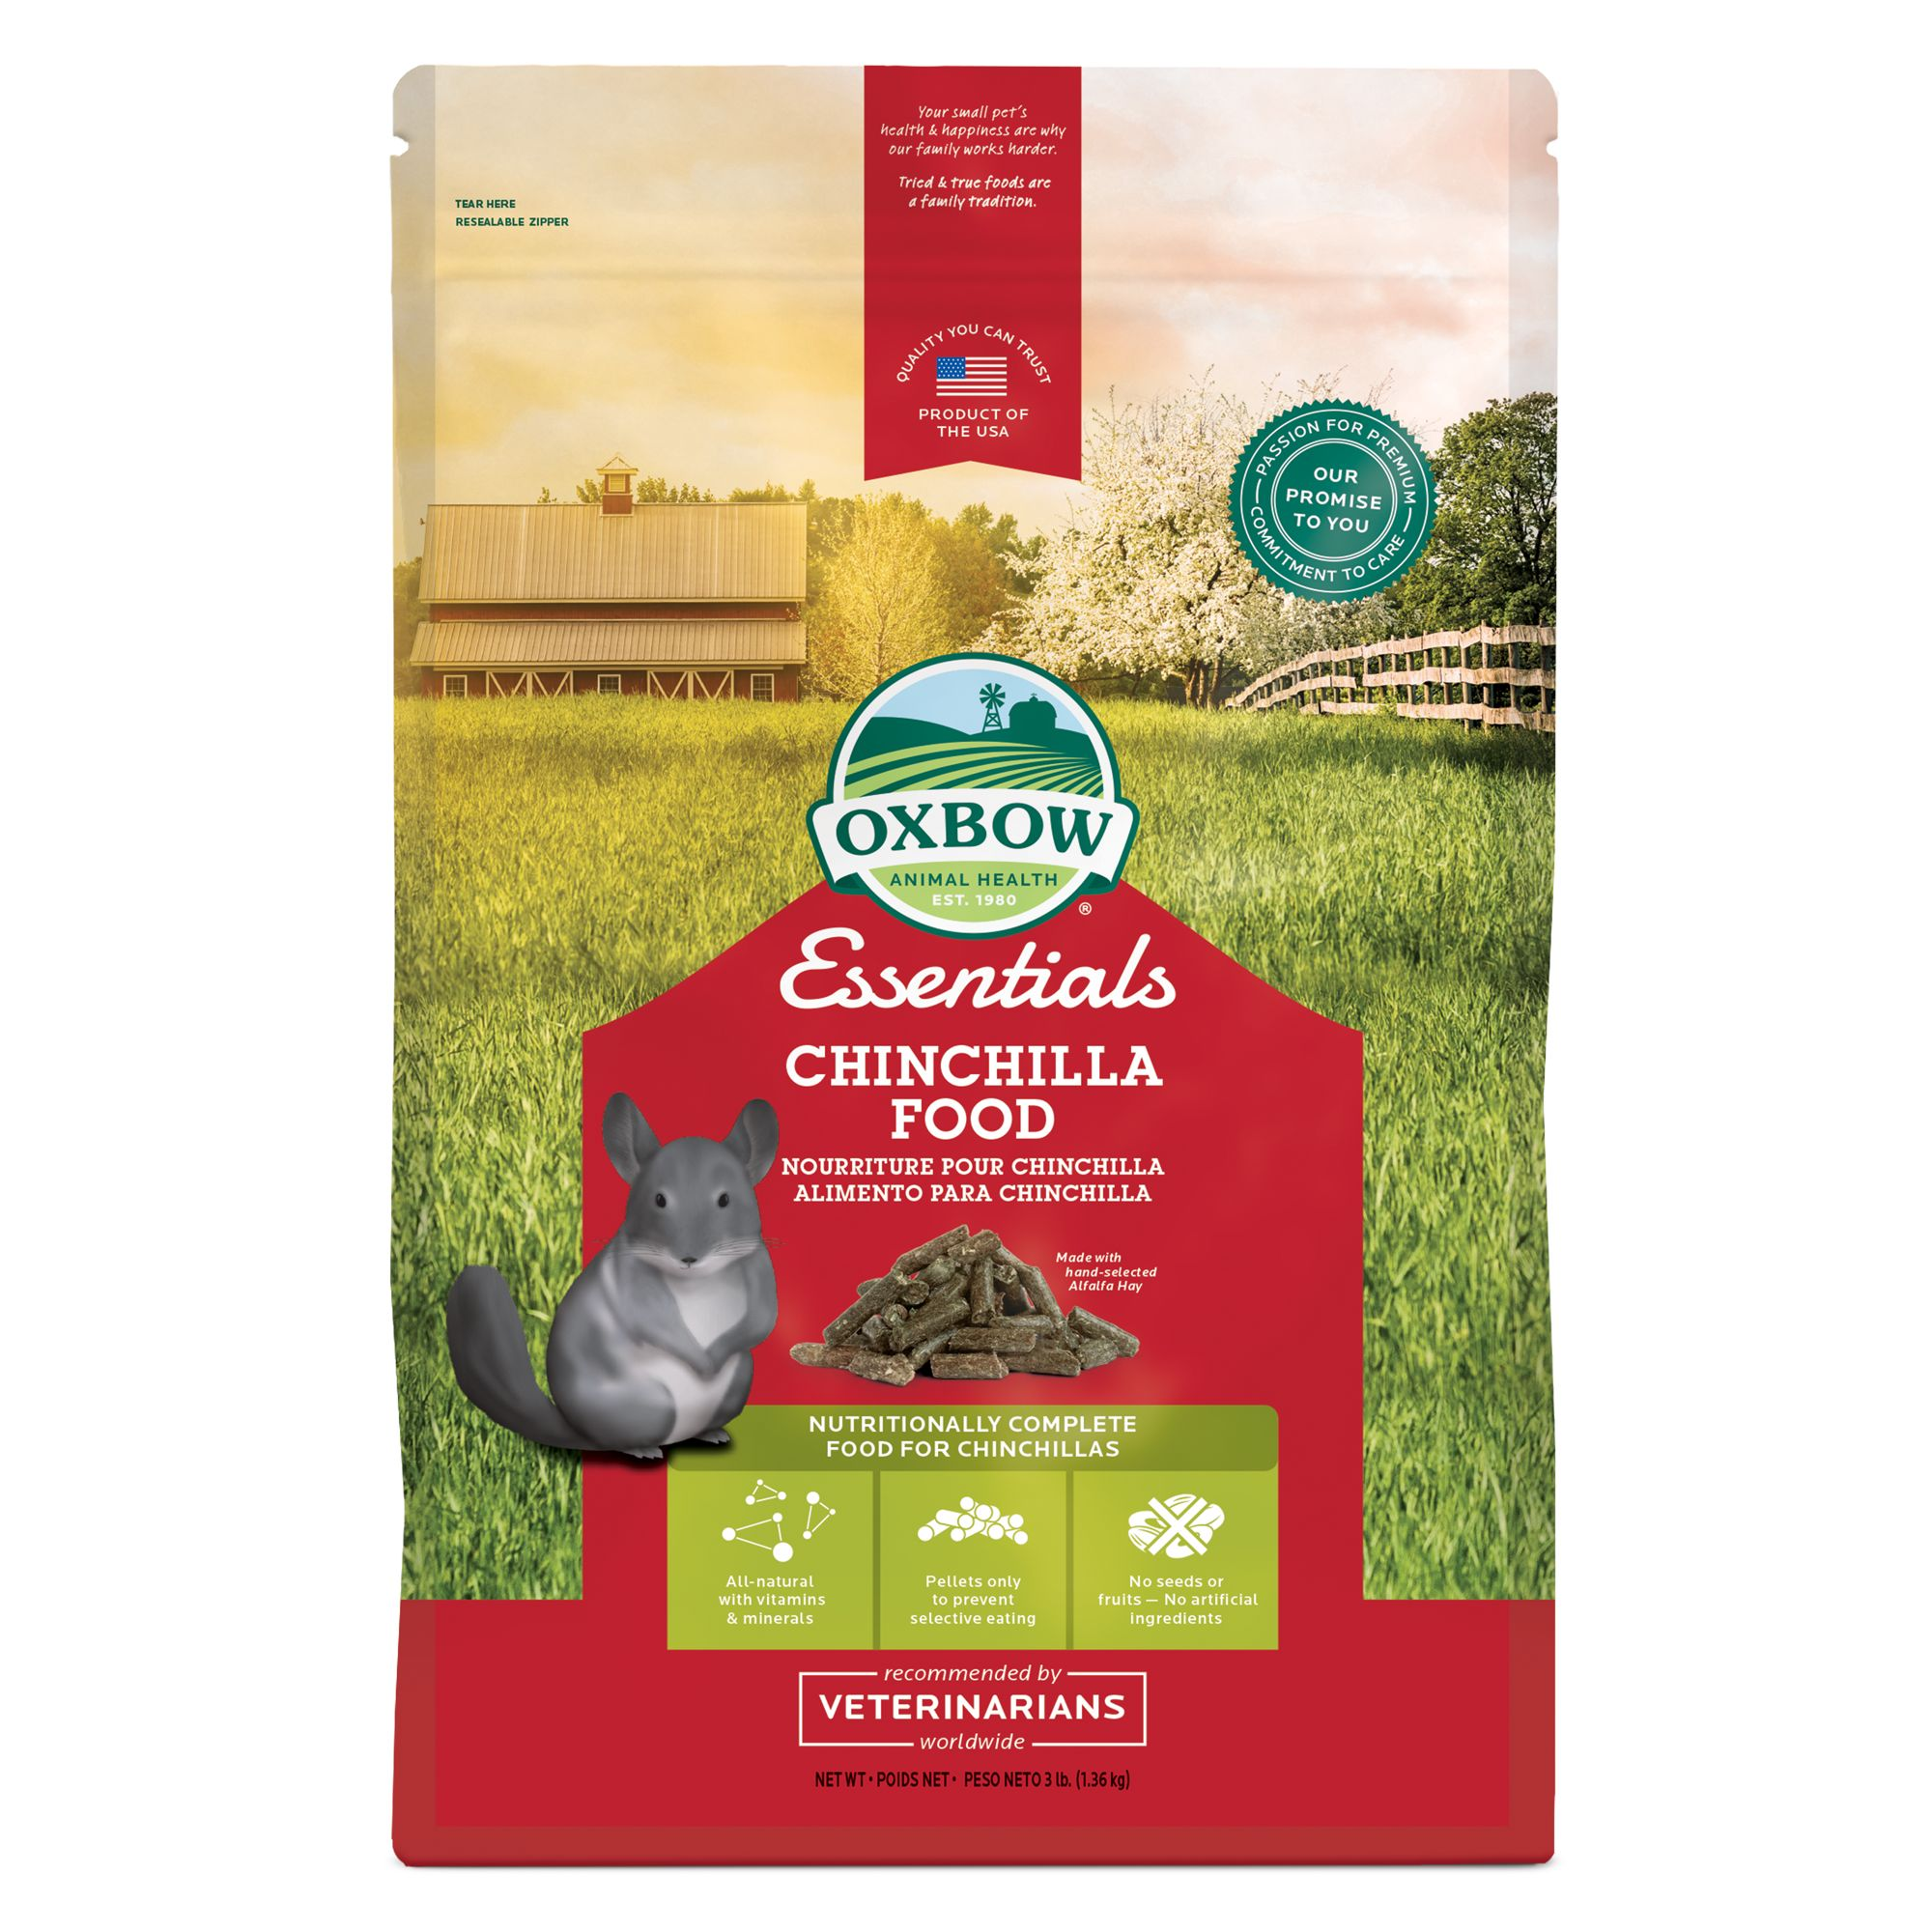 OXBOW PET PRODUCTS Essentials Chinchilla Food